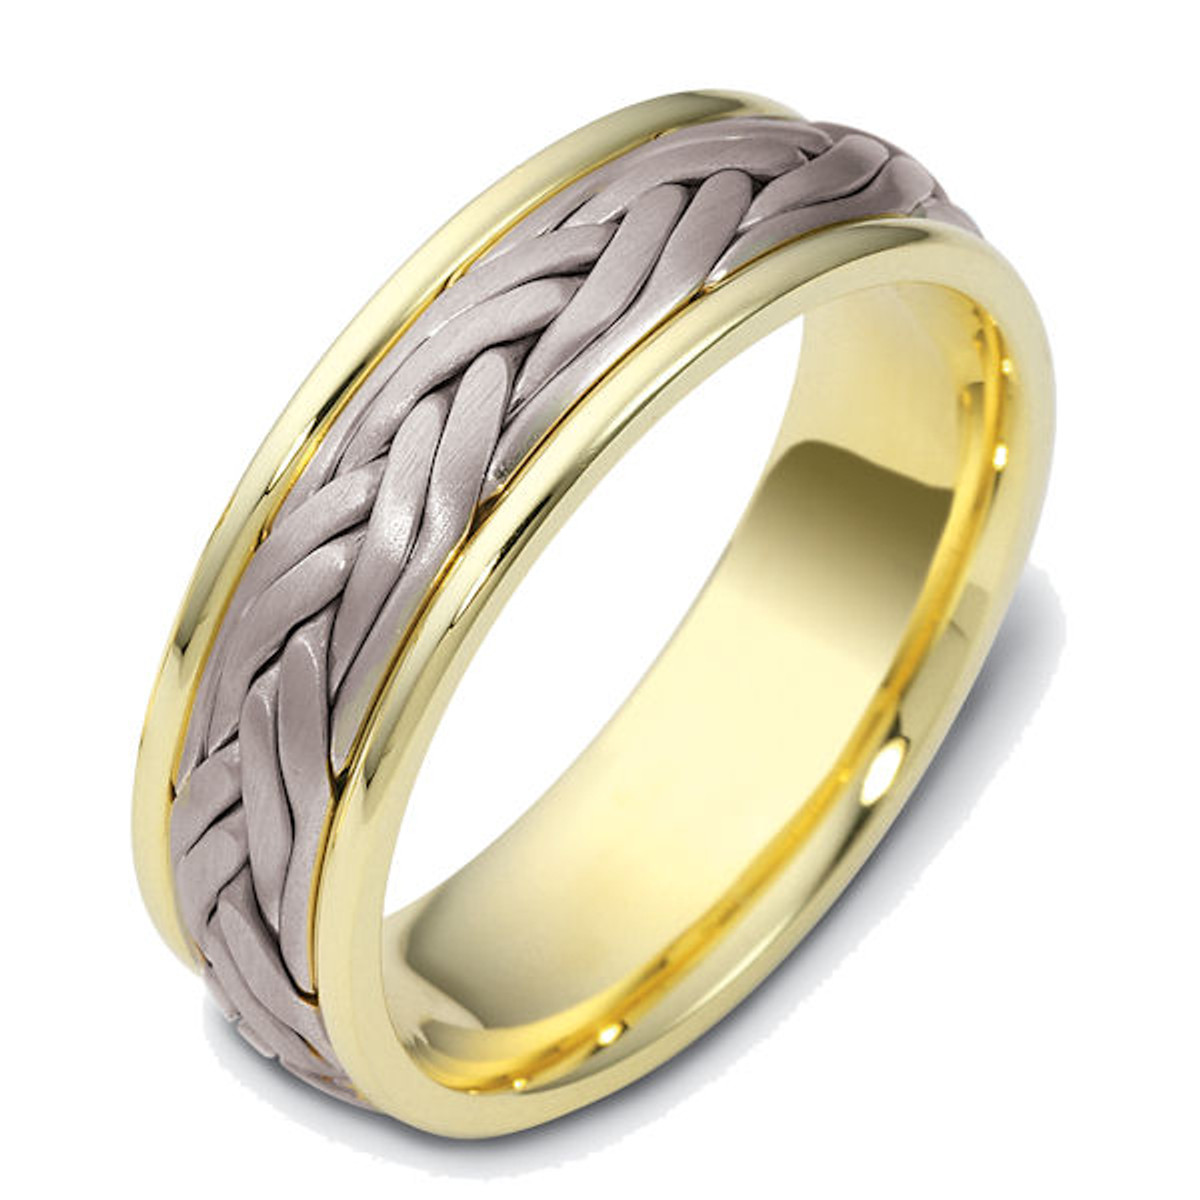 14Kt Two-Tone Hand Crafted Wedding Ring